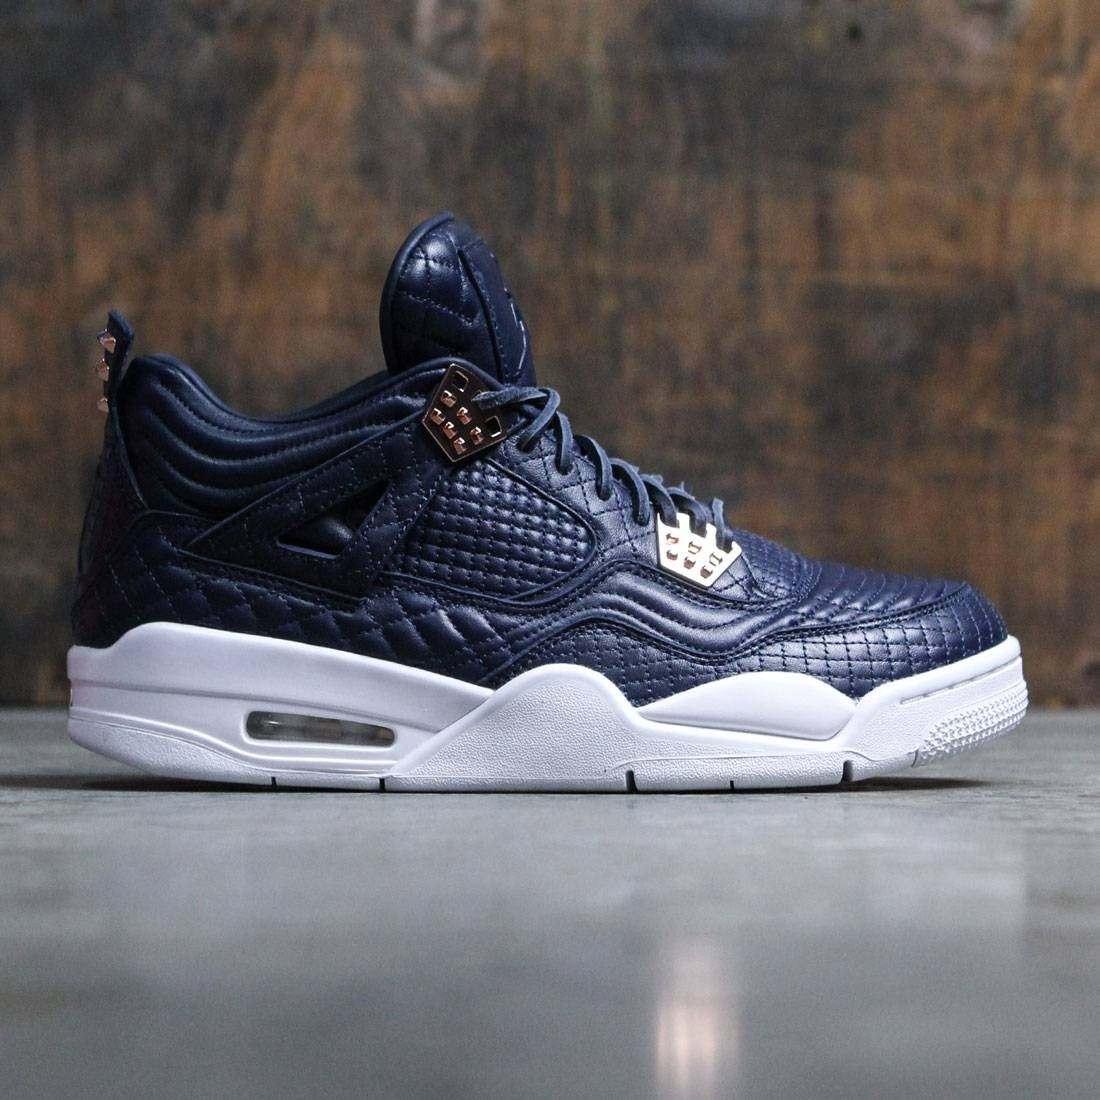 ac851183a0b8 Jordan Men AIR JORDAN 4 RETRO Pinnacle PREMIUM (navy   obsidian   obsidian -white)